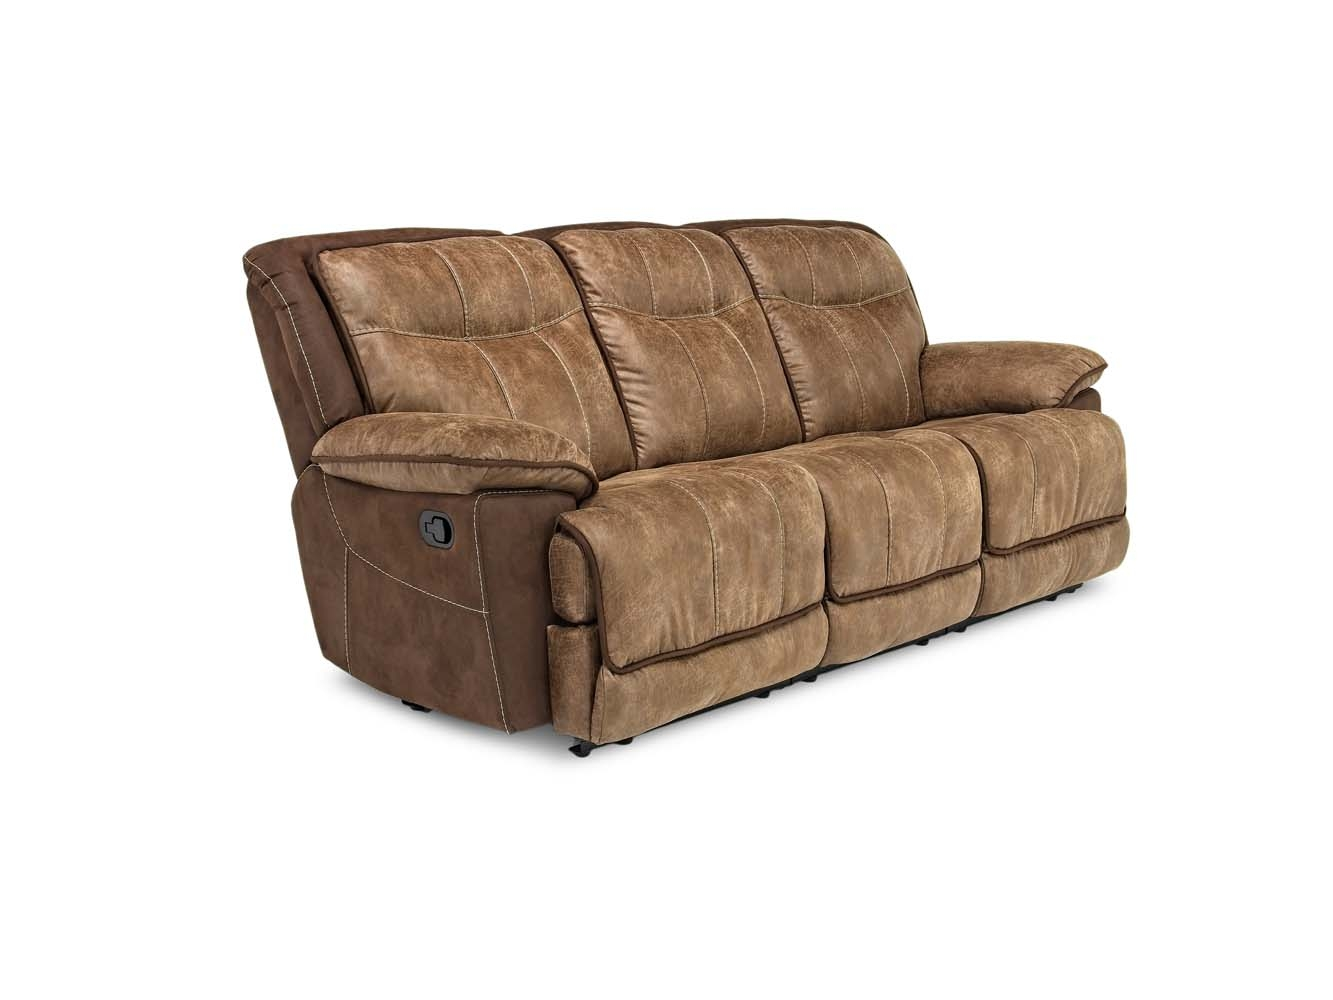 Stupendous Bubba Triple Reclining Sofa In Brown Mor Furniture Pabps2019 Chair Design Images Pabps2019Com